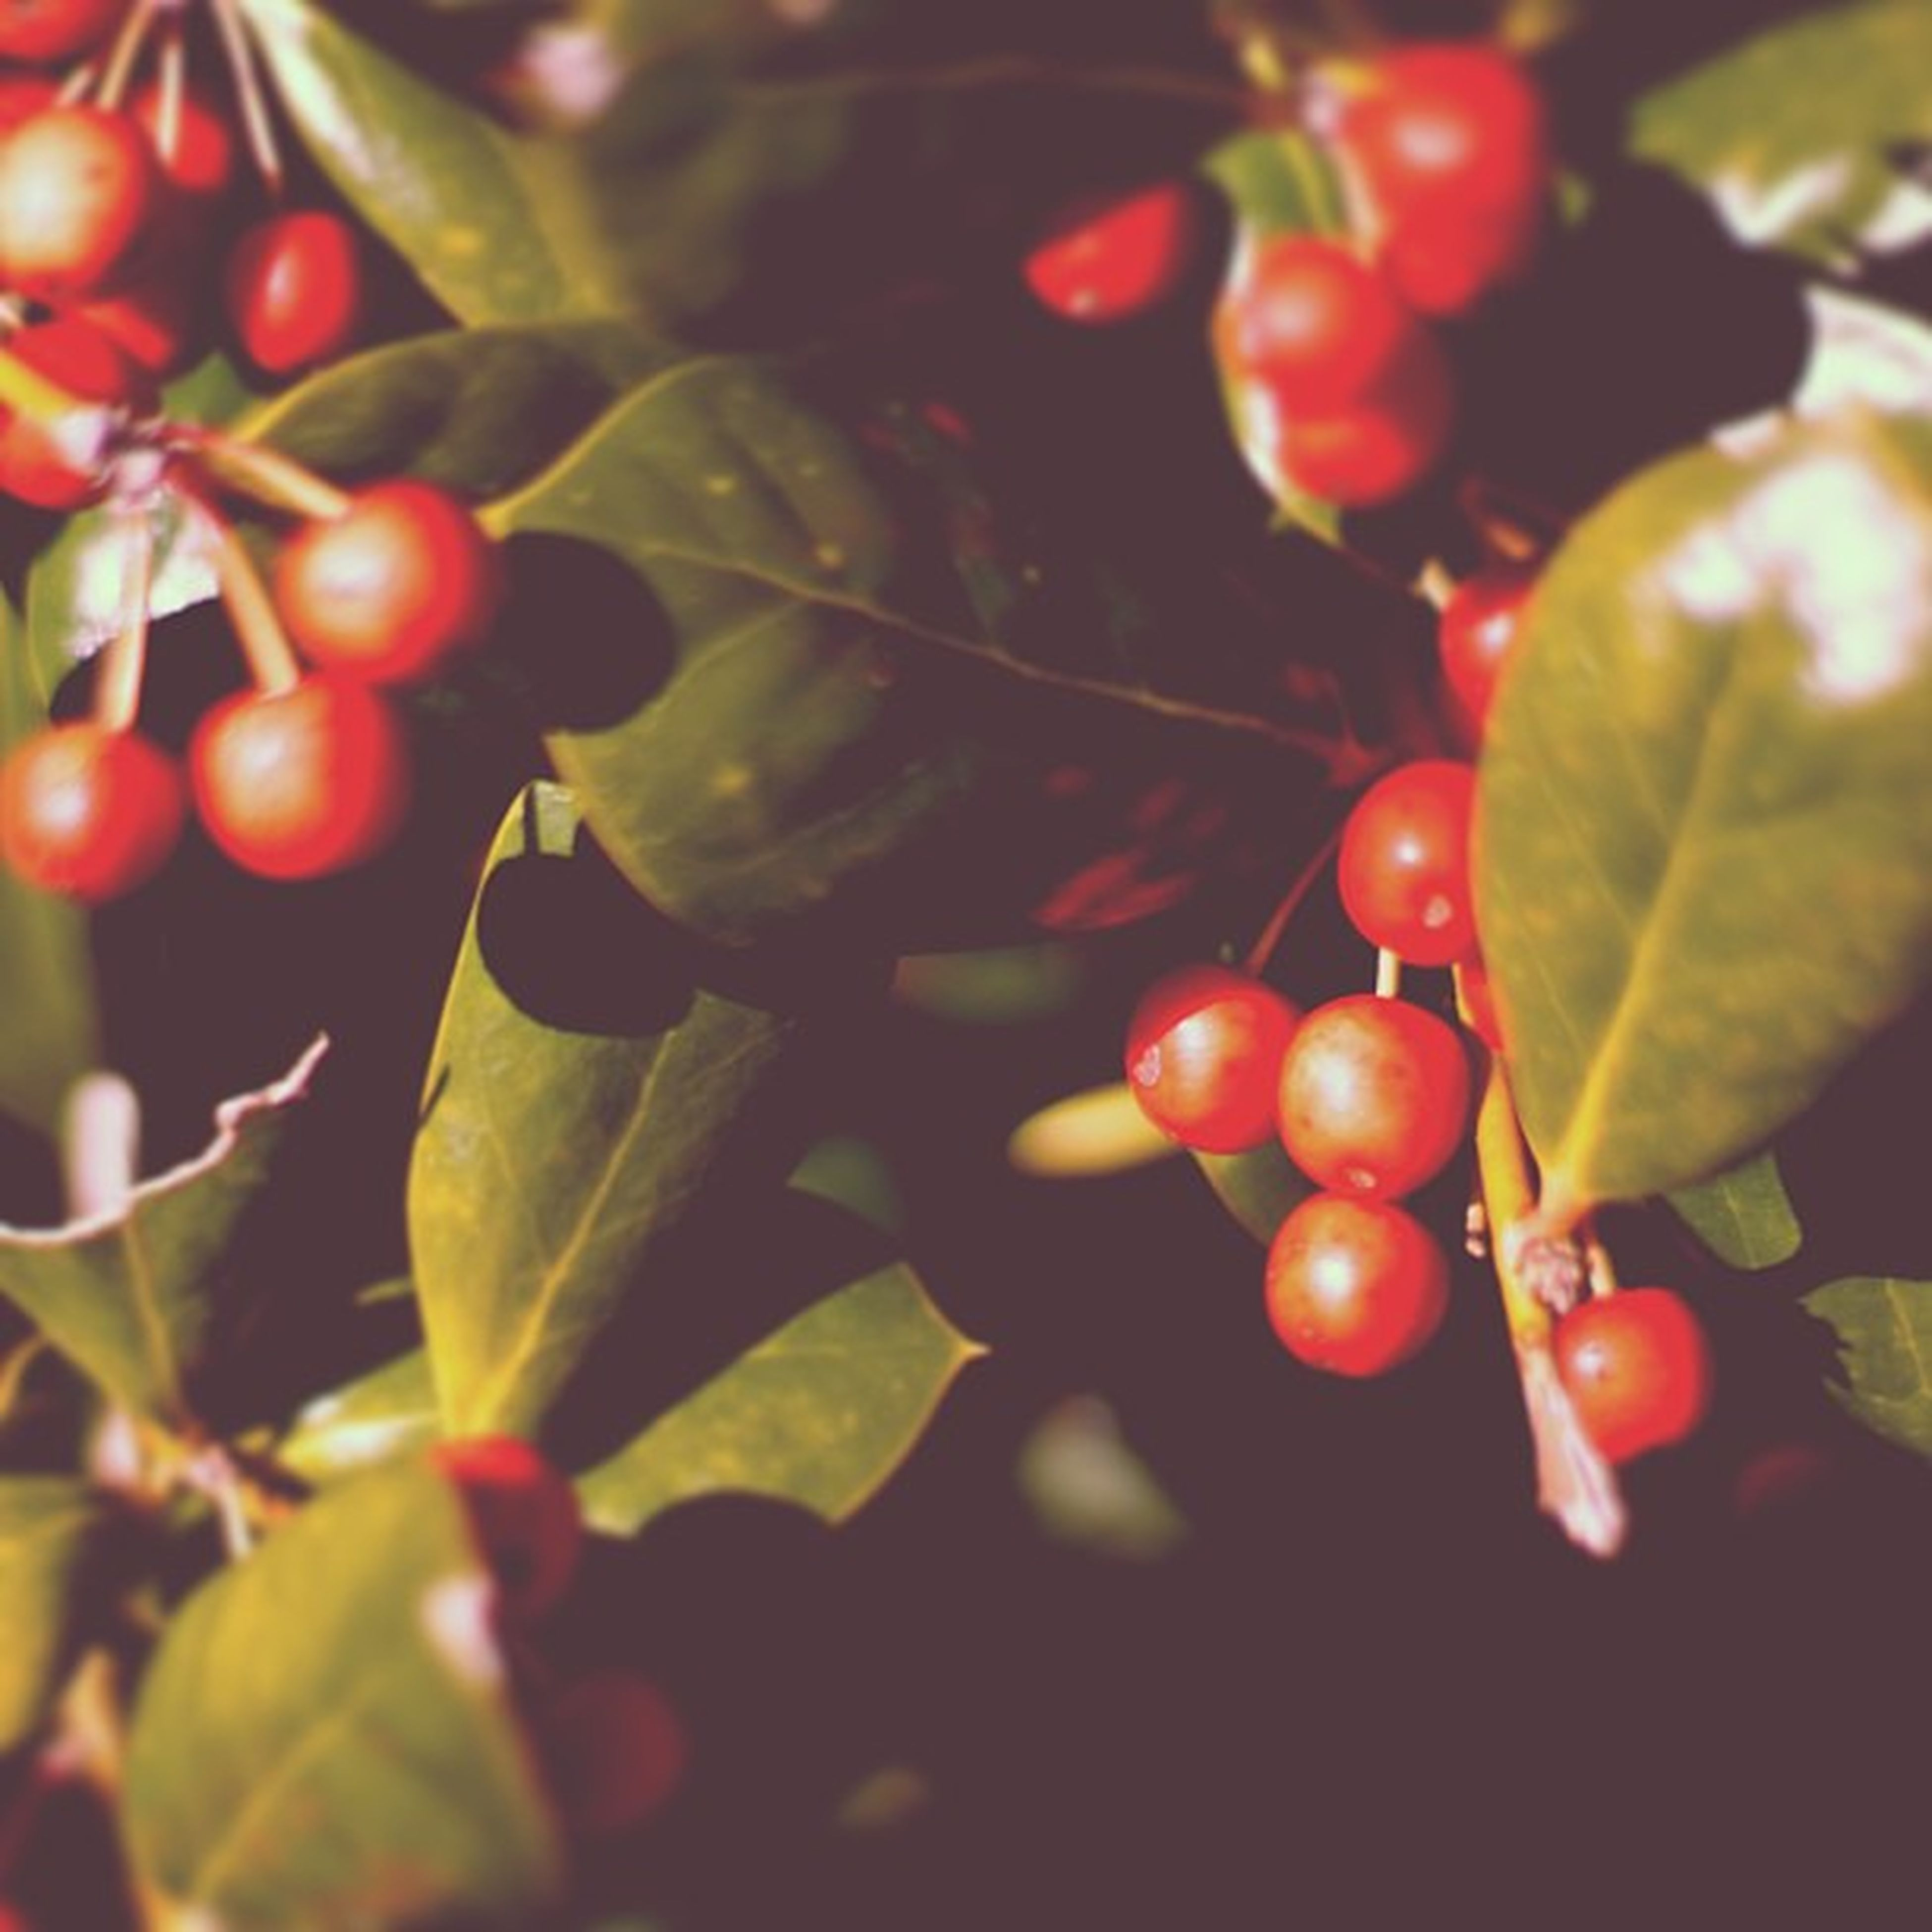 red, fruit, food and drink, leaf, food, freshness, growth, healthy eating, tree, close-up, branch, hanging, ripe, cherry, nature, focus on foreground, berry fruit, green color, day, berry